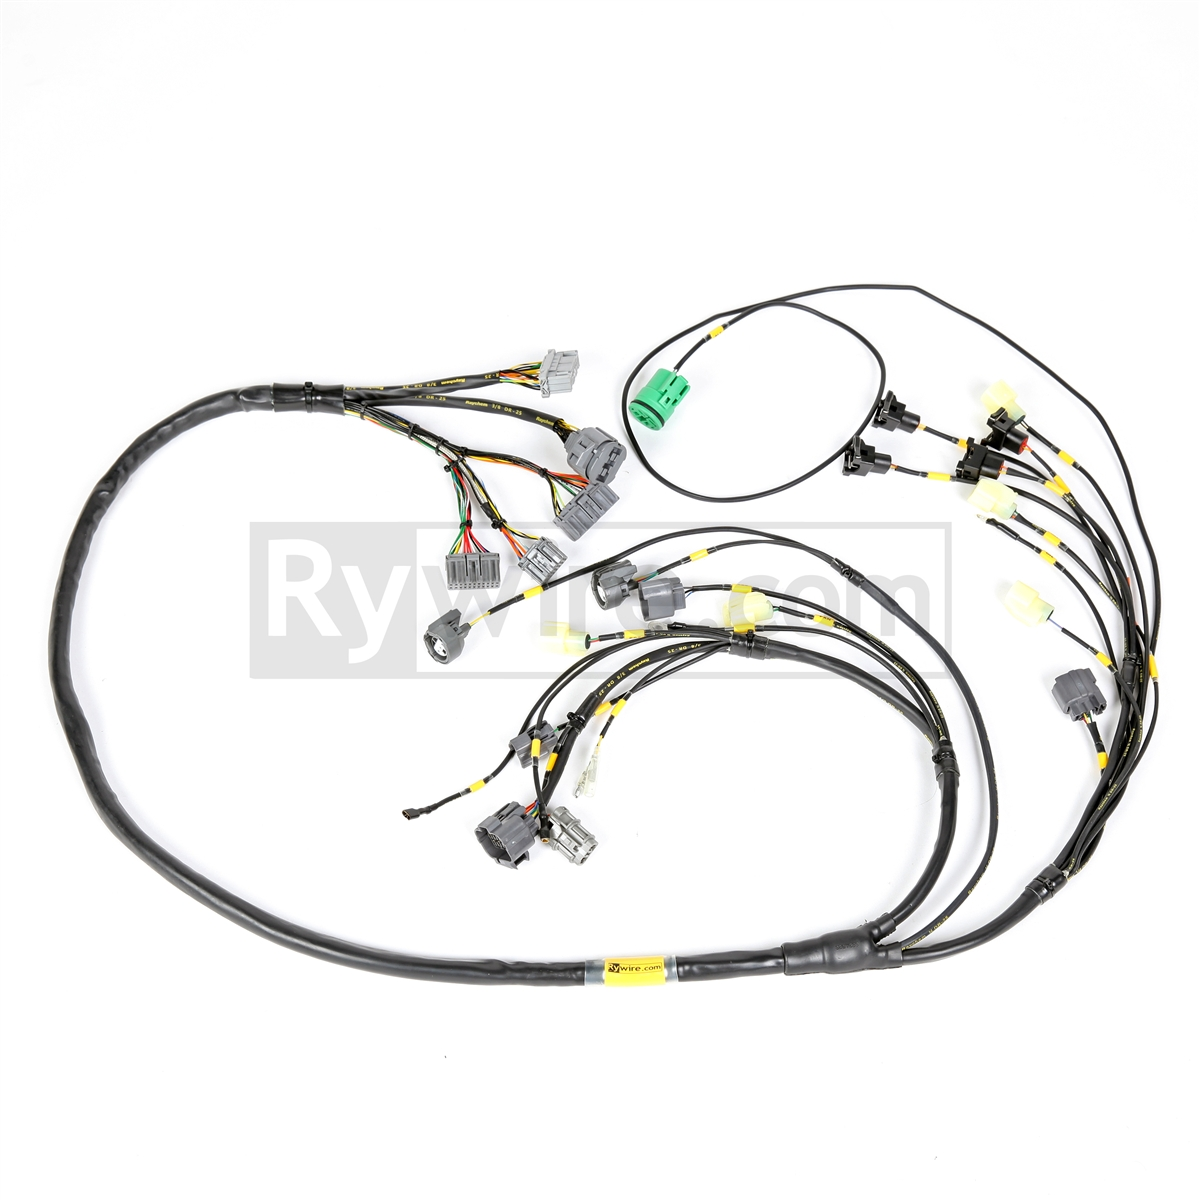 Rywire.com - Mil-Spec F-Series (F20b) & H-Series (H22) harness on alternator connector diagram, generator diagram, alternator relay diagram, car alternator diagram, ac compressor wire diagram, ford alternator diagram, alternator replacement, how alternator works diagram, toyota alternator diagram, alternator engine diagram, dodge alternator diagram, gm alternator diagram, 13av60kg011 parts diagram, alternator generator, alternator parts, alternator plug diagram, alternator winding diagram, alternator fuse diagram, alex anderson alternator diagram, alternator charging system,